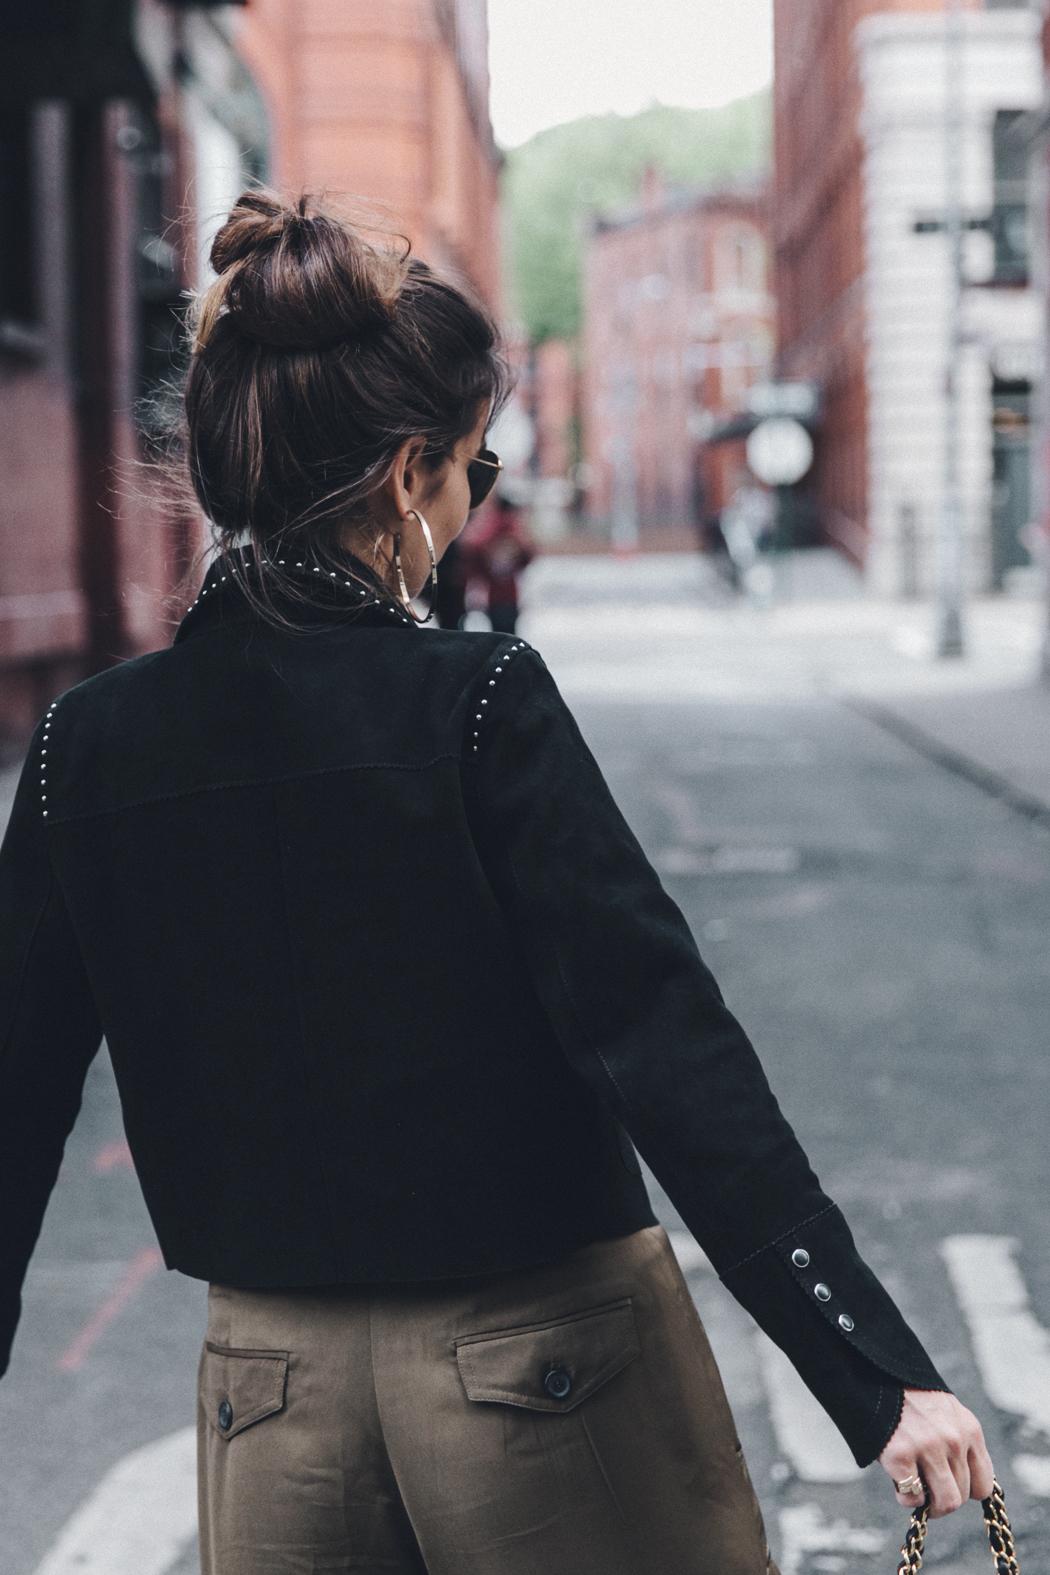 Khaki_Trousers-Sandro_Suede_Jacket-BNKR_Sandals-Fur_Sandals-Chanel_Bag-Outfit-Street_Style-NYC-44